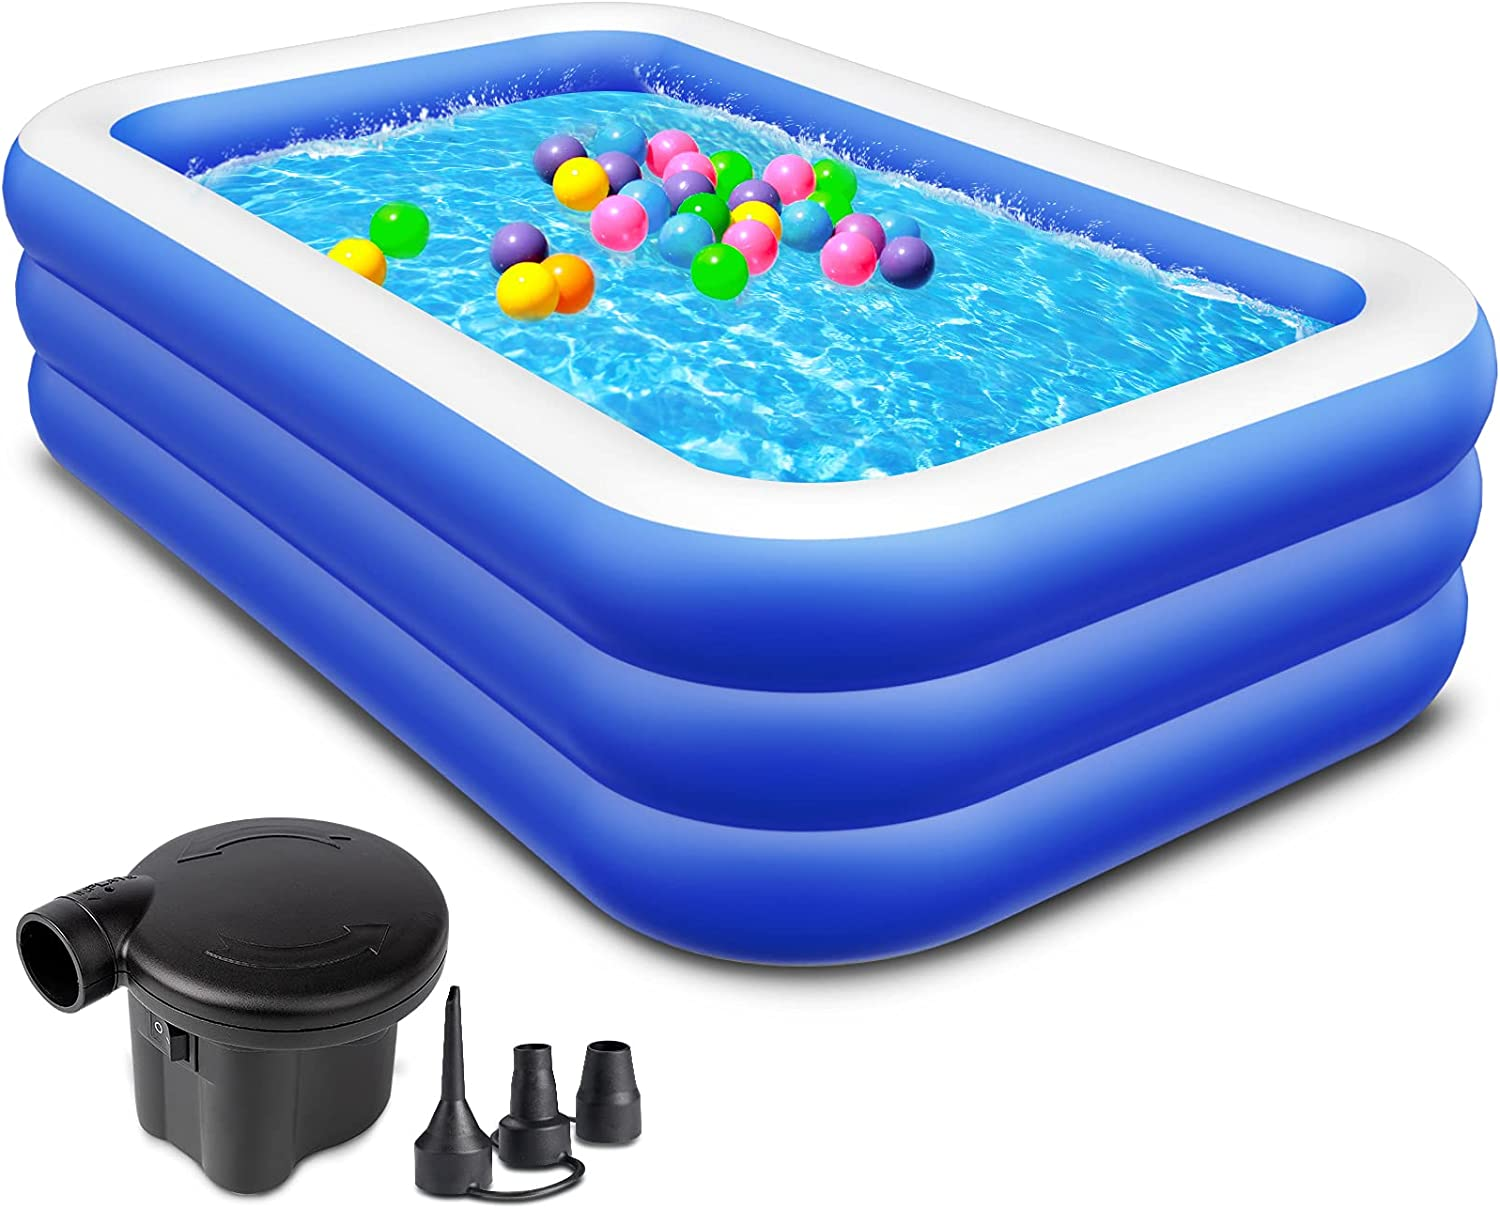 ZATK Inflatable Pool, Large Family Pool with Electric Air Pump, 94''x55''x22'' Blow Up Swimming Pool for Adult and Kids, Summer Backyard Garden Lounge Pool